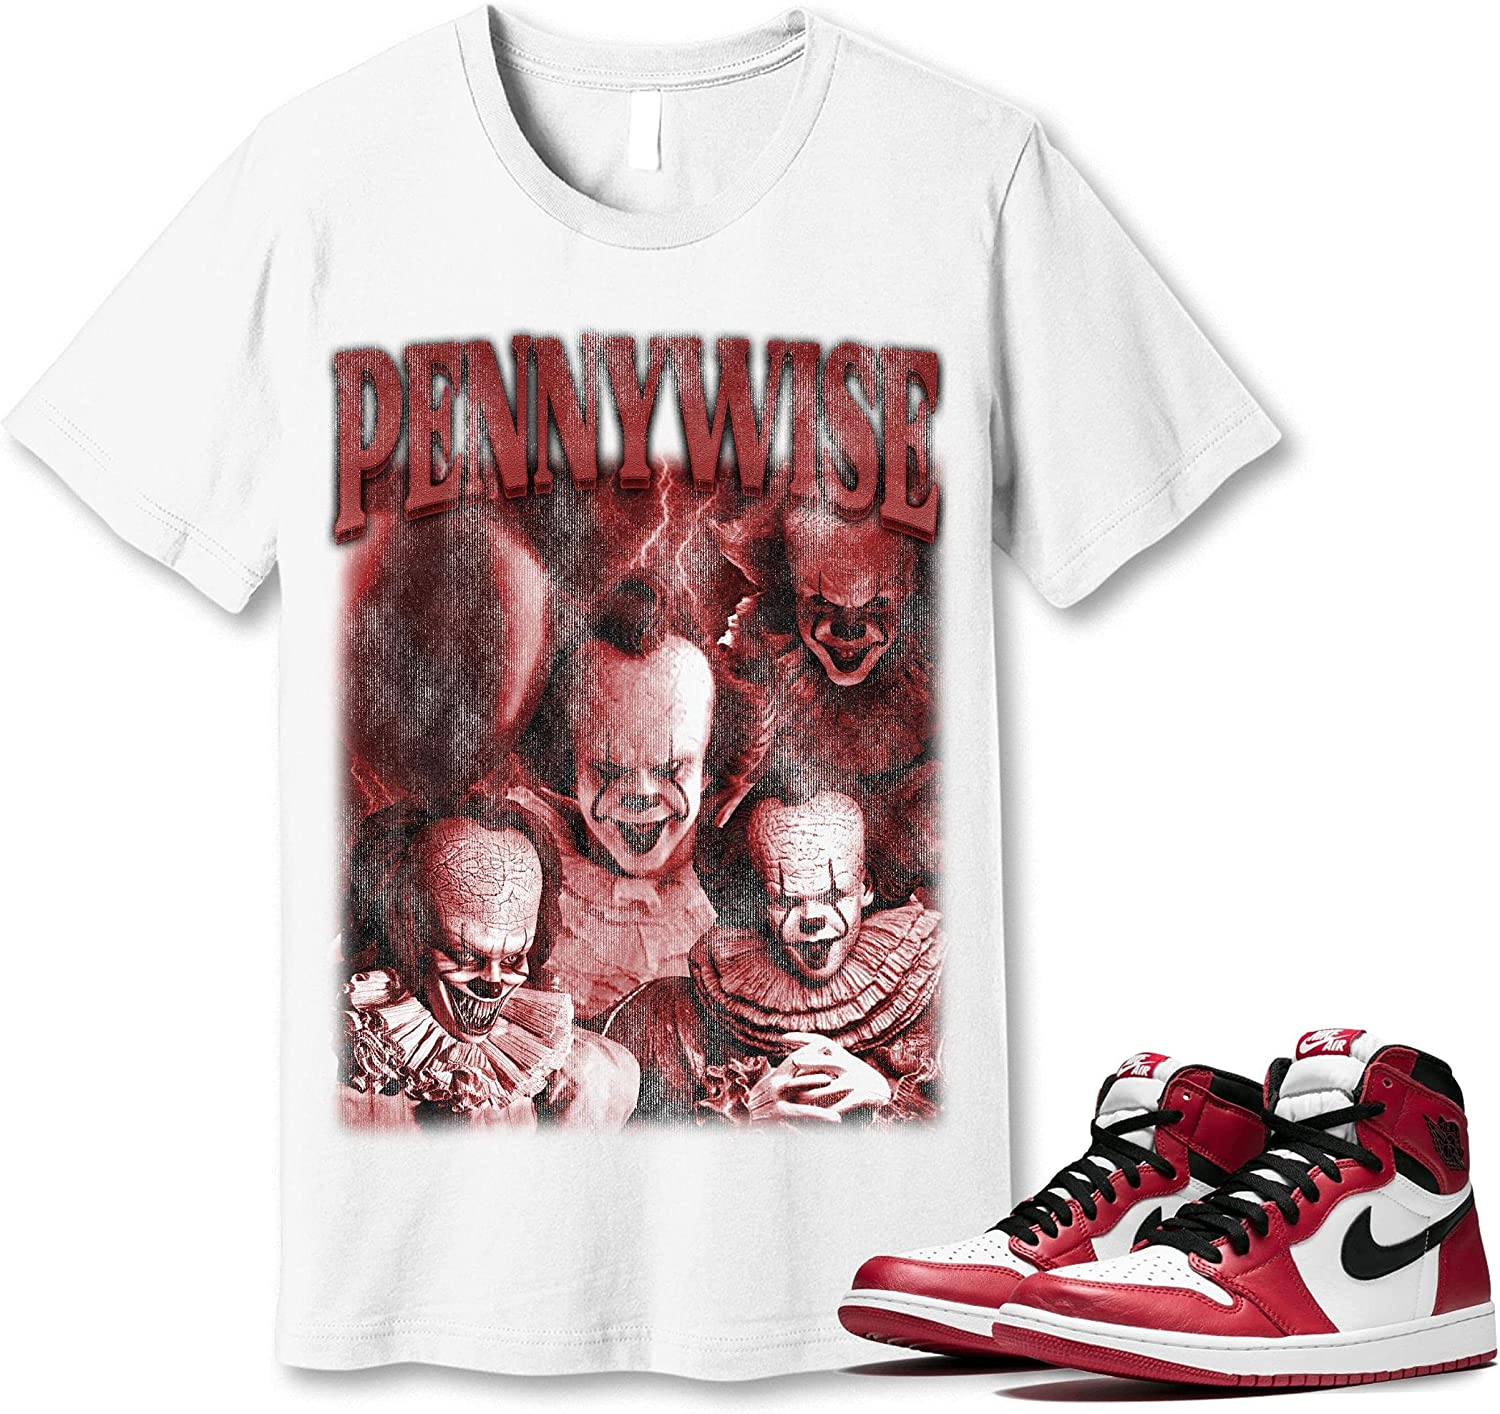 #Pennywise T-Shirt Popular products to Brand Cheap Sale Venue Match Jordan 1 Snkrs E Got Chicago Sneaker